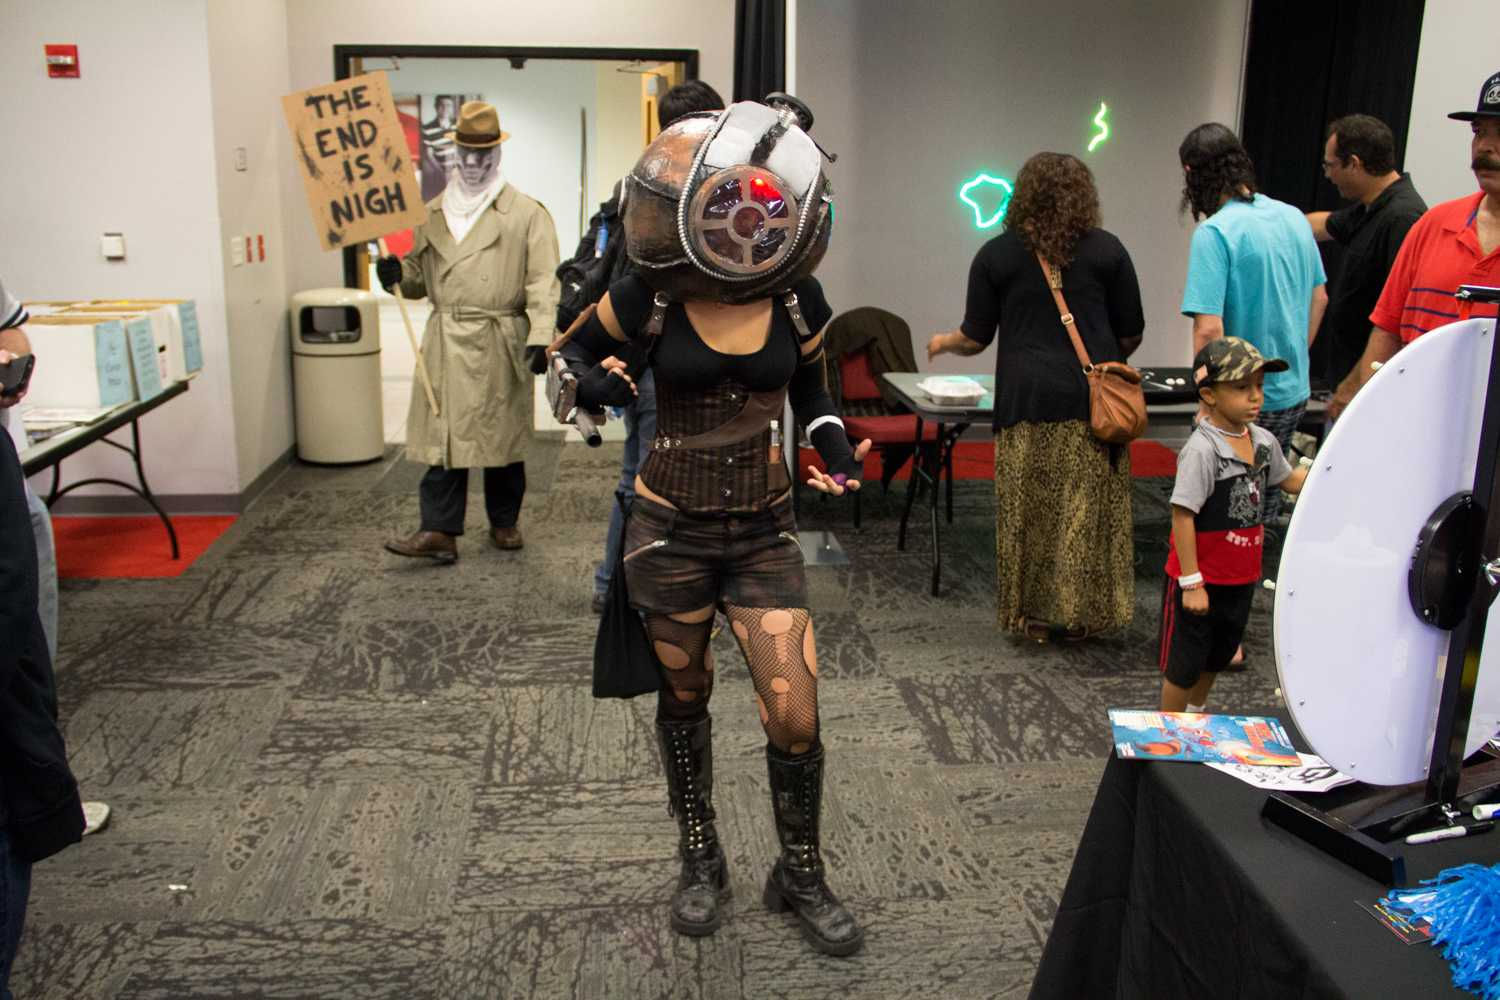 Student Ariel Cofino cosplaying as a Big Sister from video game BioShock 2, while George Alonso stands in the back as Rorschach from the graphic novel Watchmen, spreading his doomsday message.